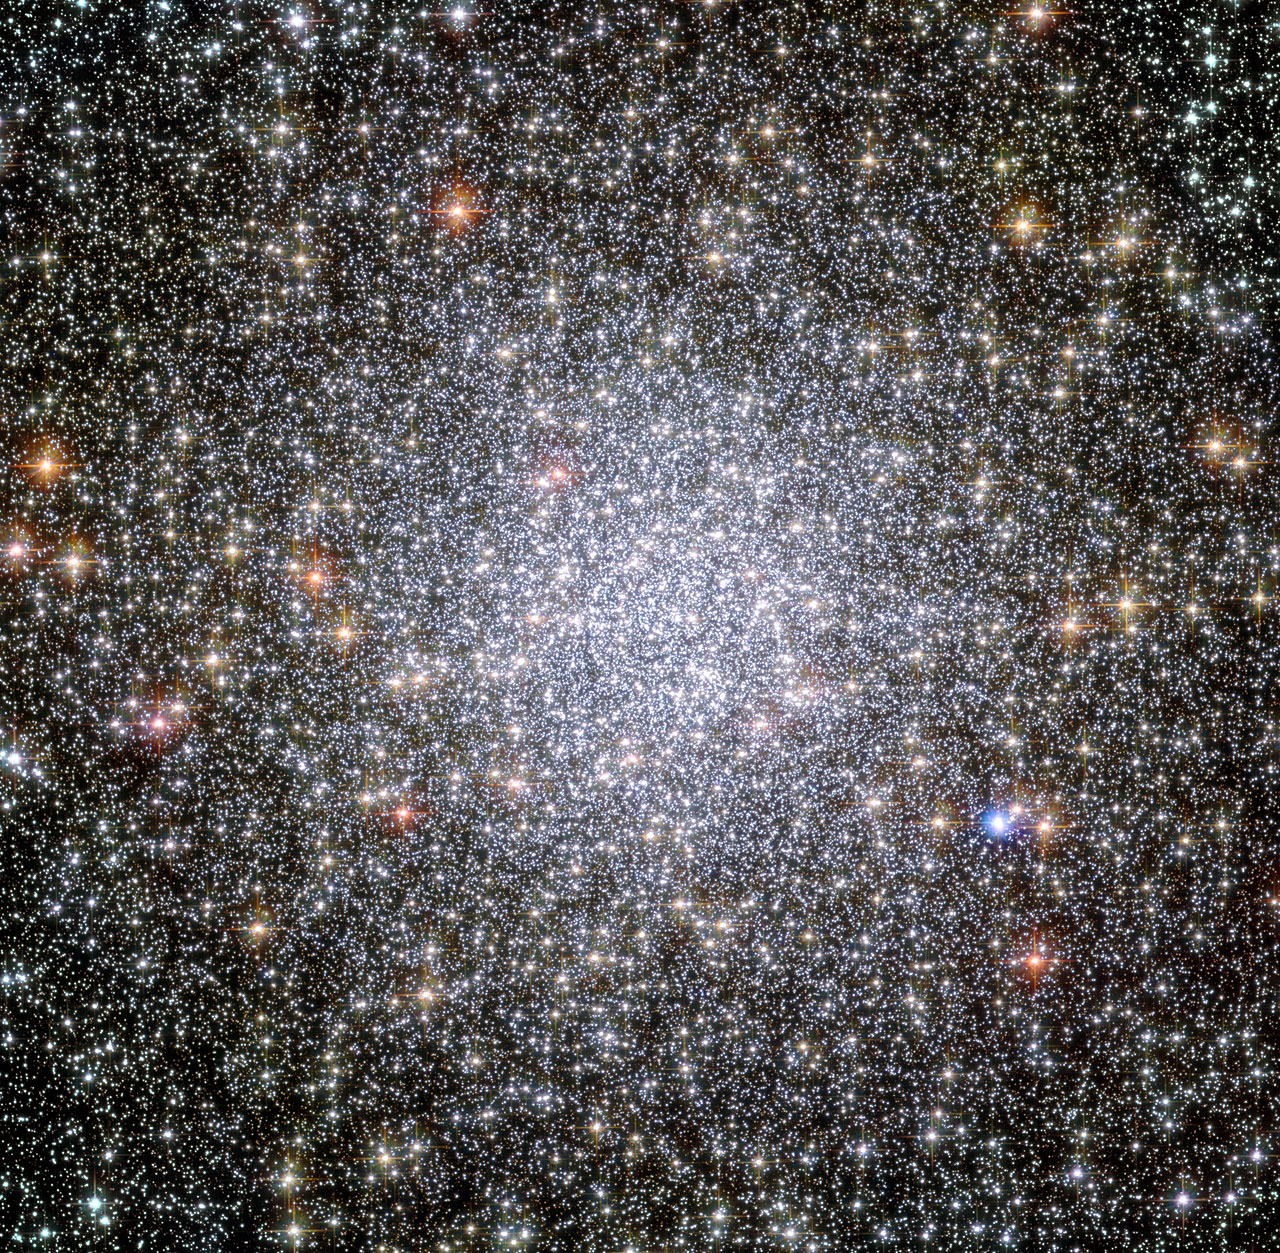 This image shows a globular cluster known as NGC 104 — or, more commonly, 47 Tucanae, since it is part of the constellation of Tucana (The Toucan) in the southern sky. After Omega Centauri it is the brightest globular cluster in the night sky, hosting tens of thousands of stars. Image credit:  ESA/Hubble & NASA